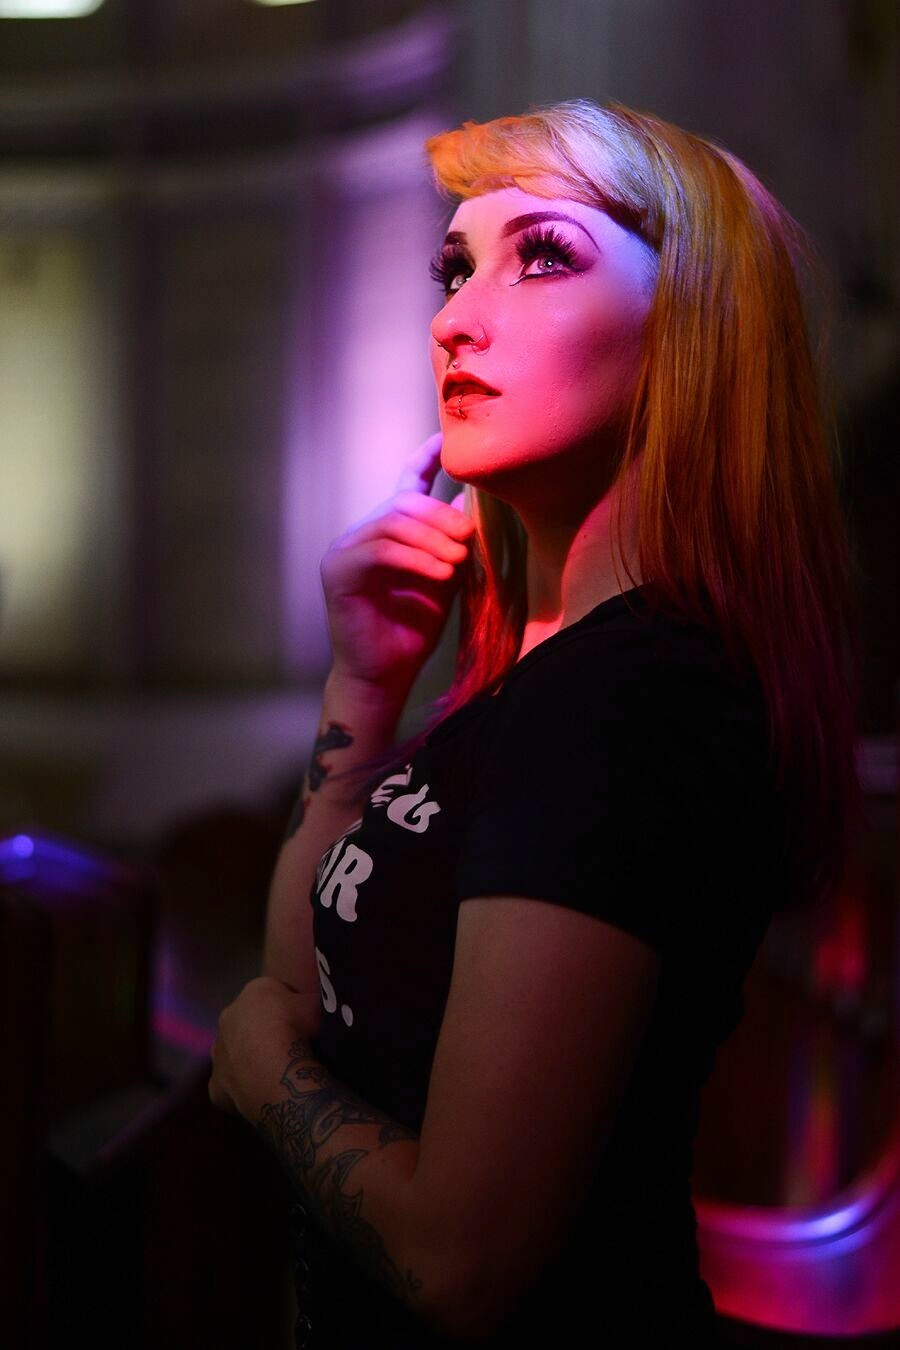 Chapel. / Photography by moonscape, Model Jade Alexandra Model, Makeup by Jade Alexandra Model / Uploaded 2nd October 2018 @ 08:43 PM